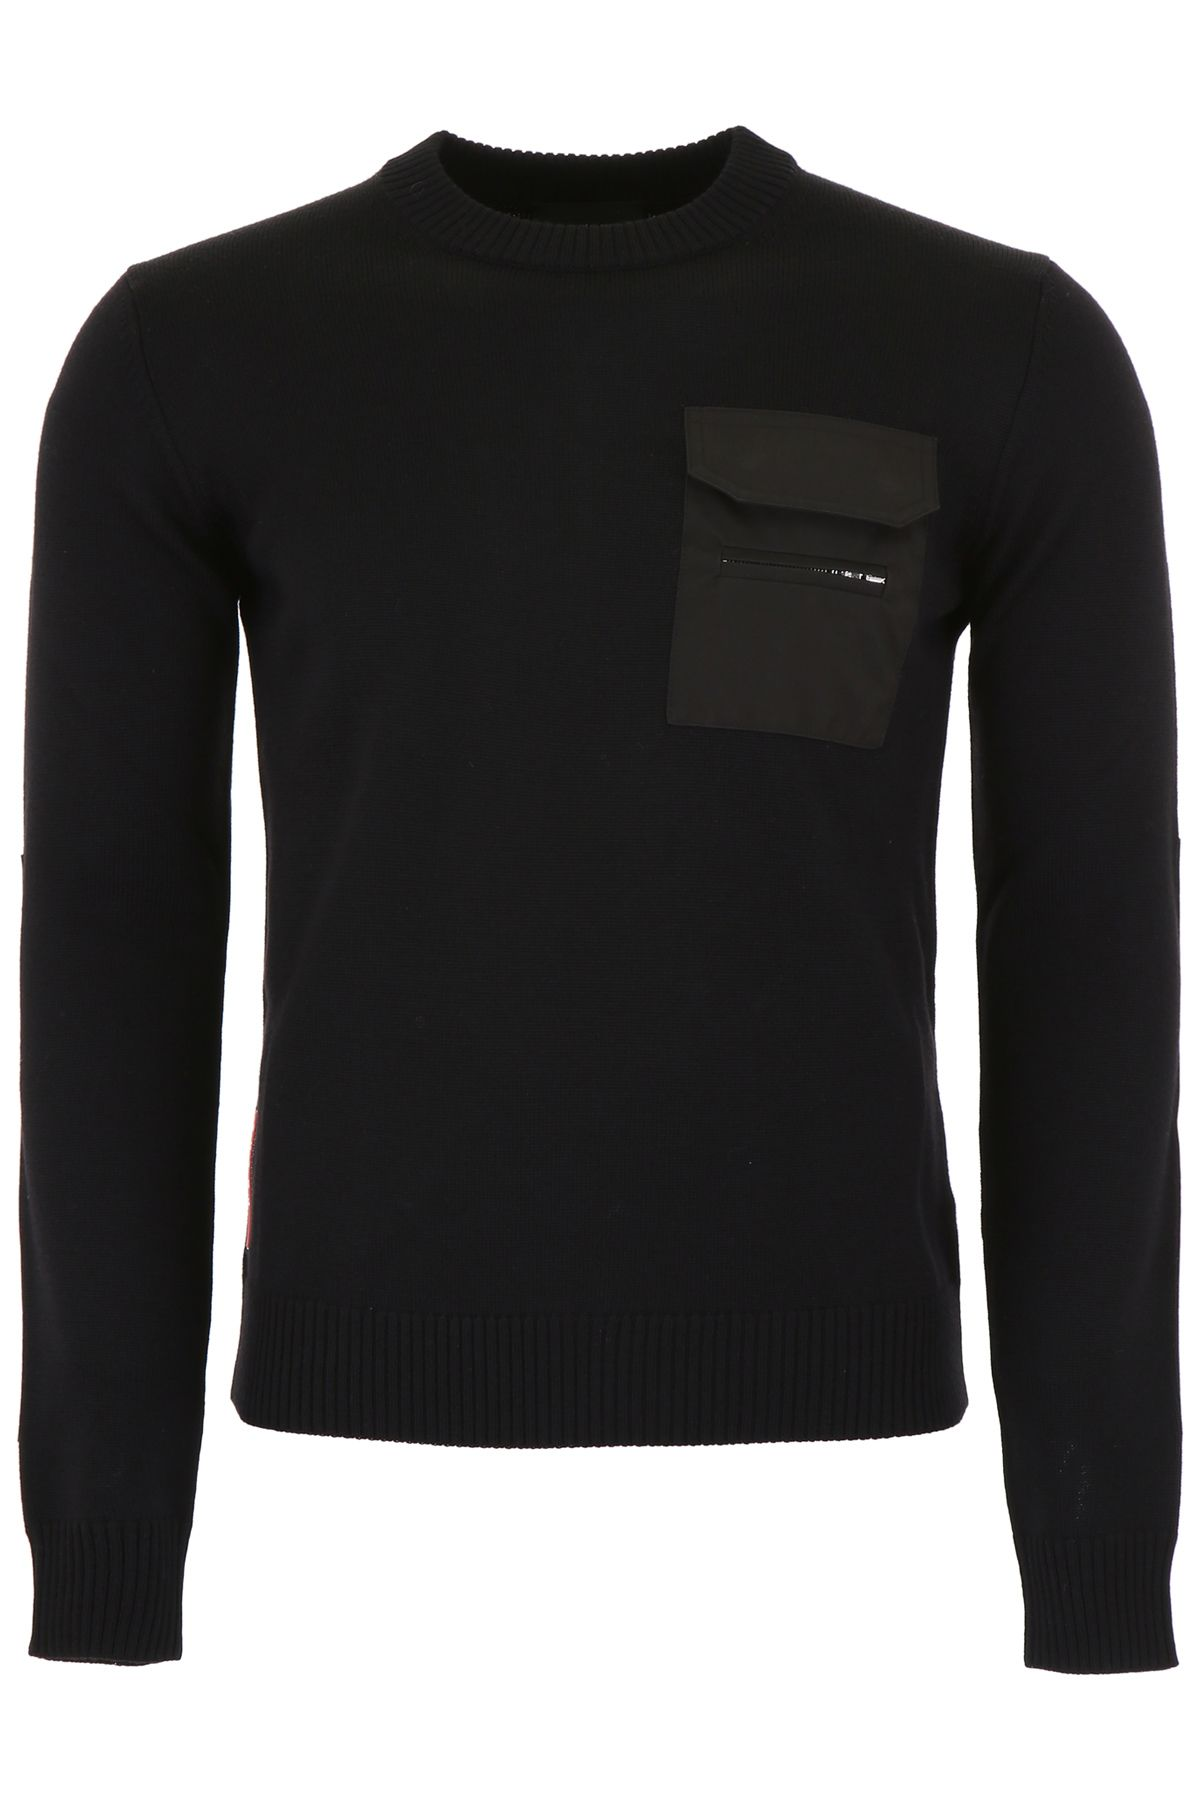 Prada Linea Rossa Wool And Nylon Pullover